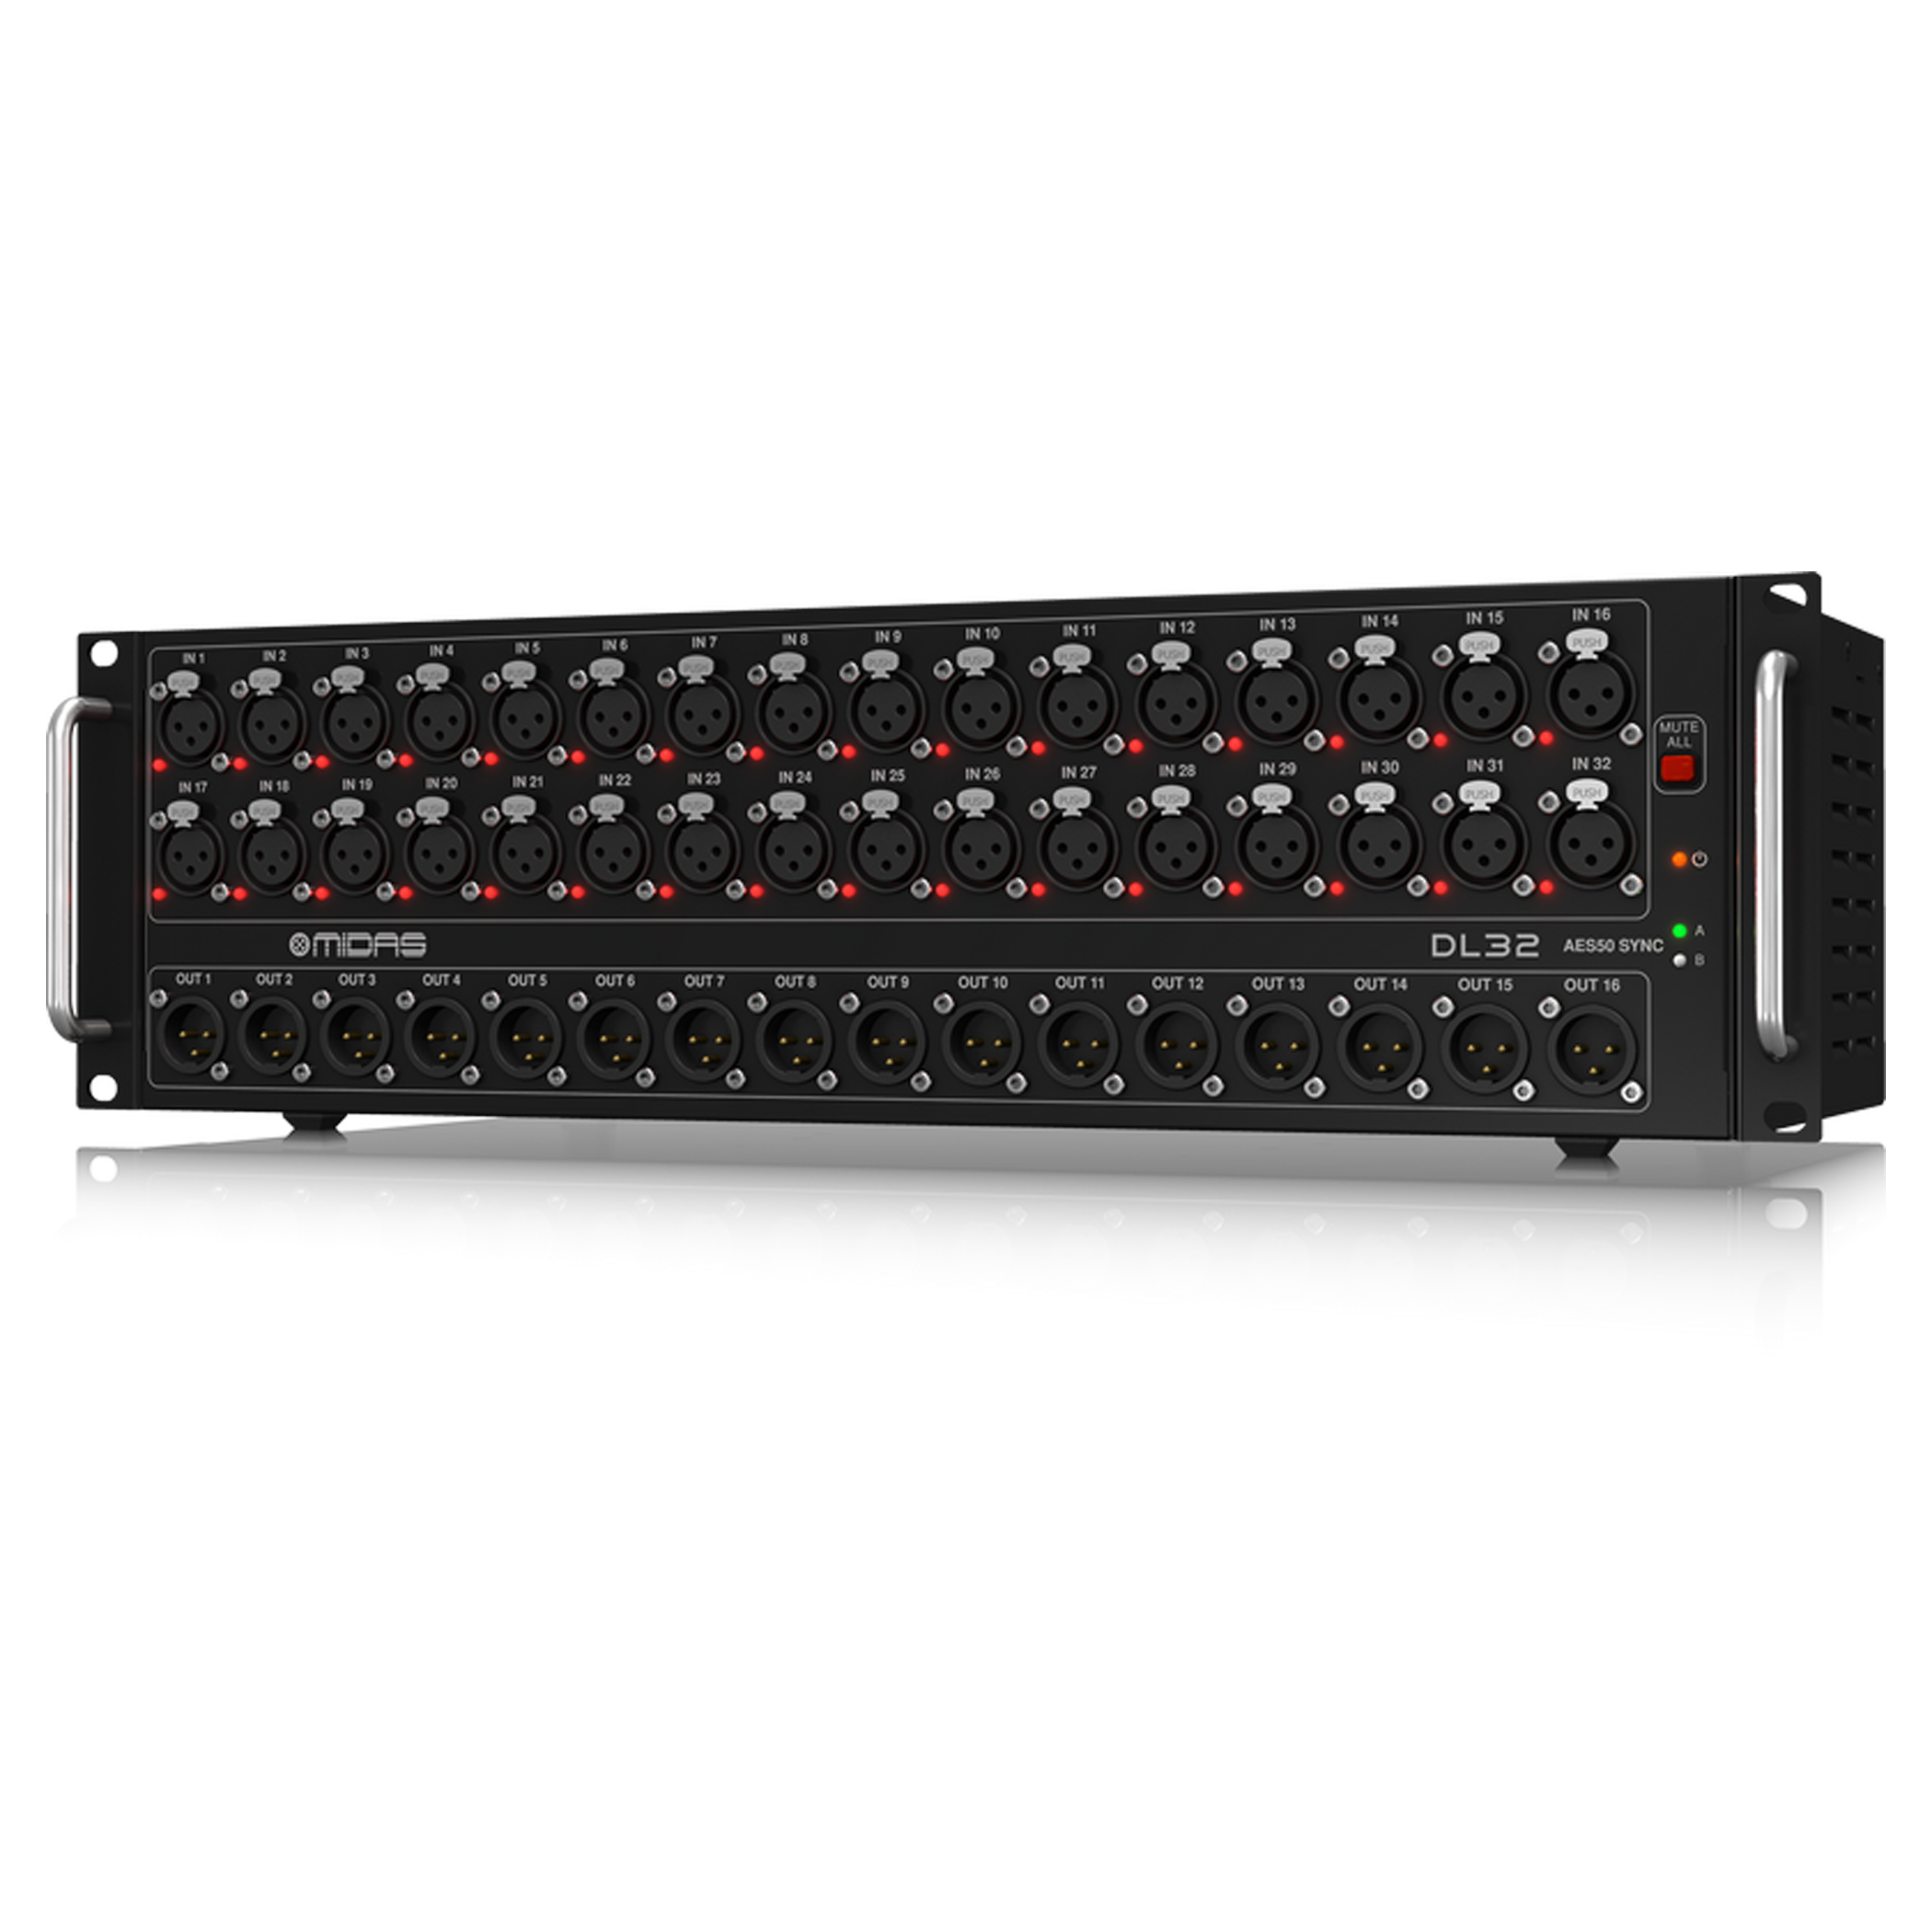 32 Input, 16 Output Stage Box with 32 Midas Microphone Preamplifiers,